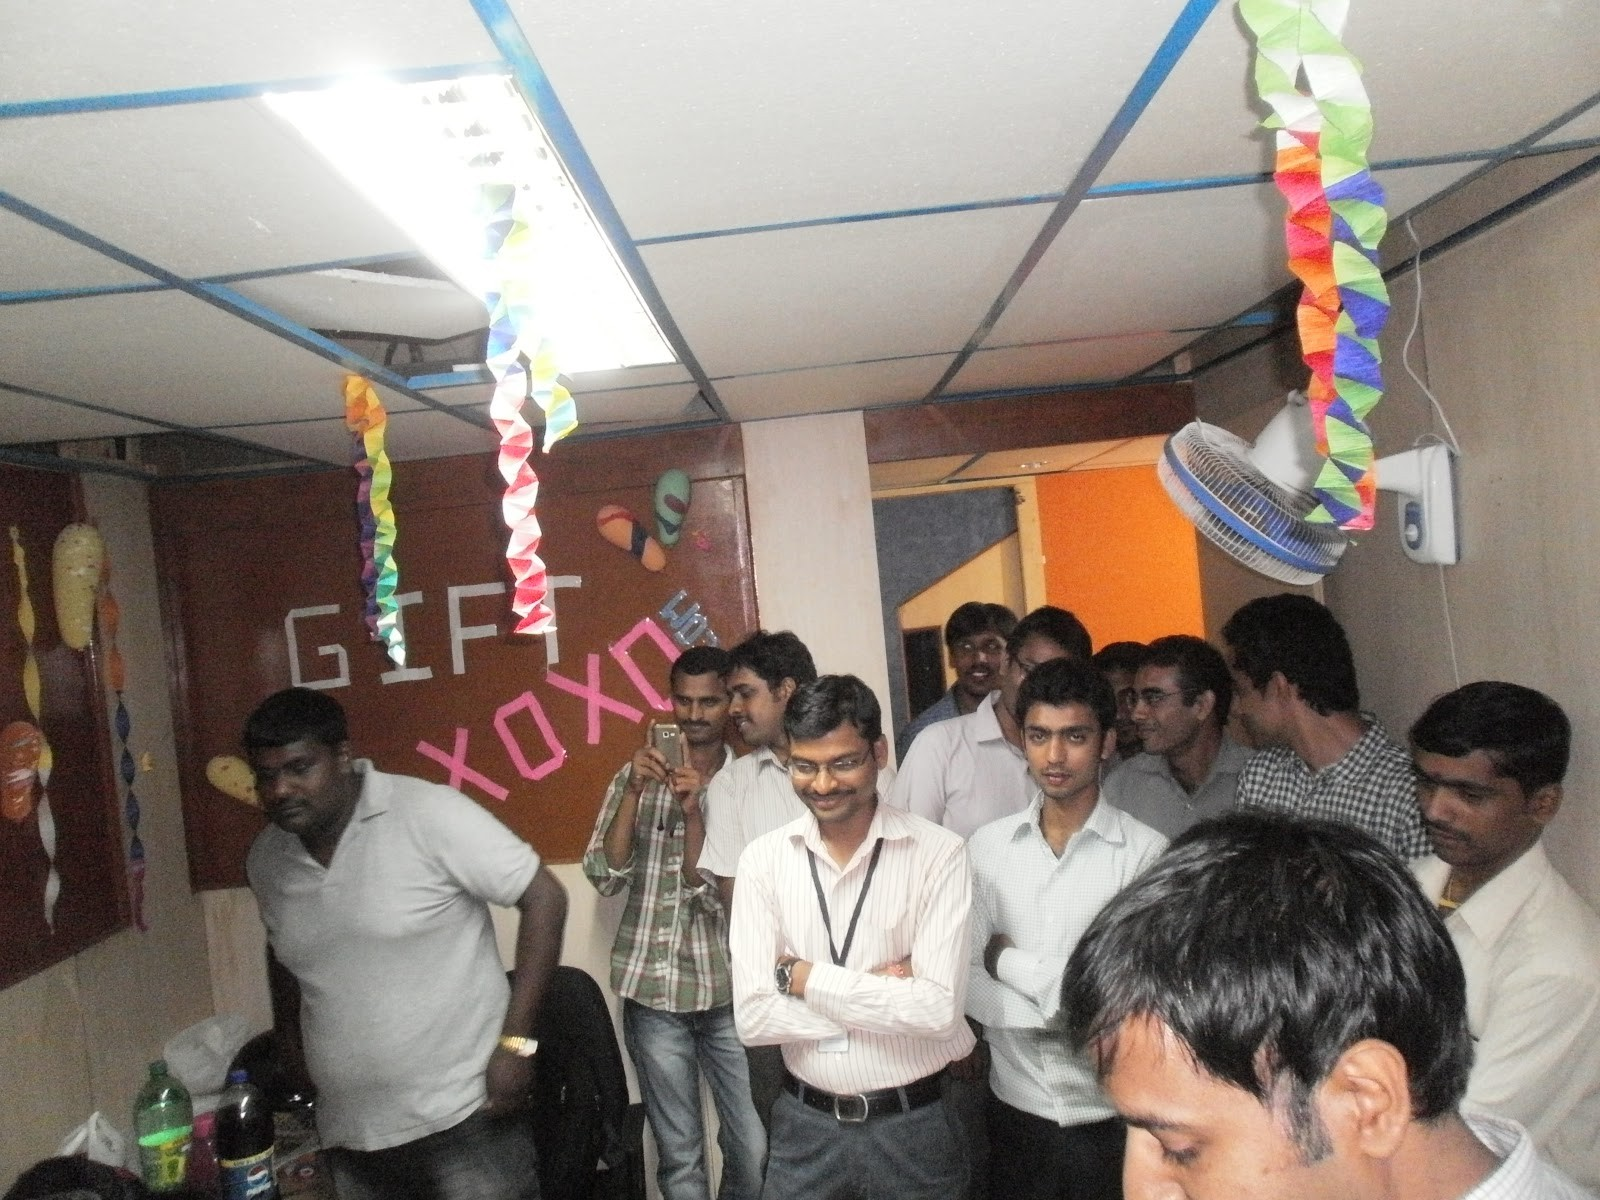 Small spaces and a tight knit team - a celebration at our first office